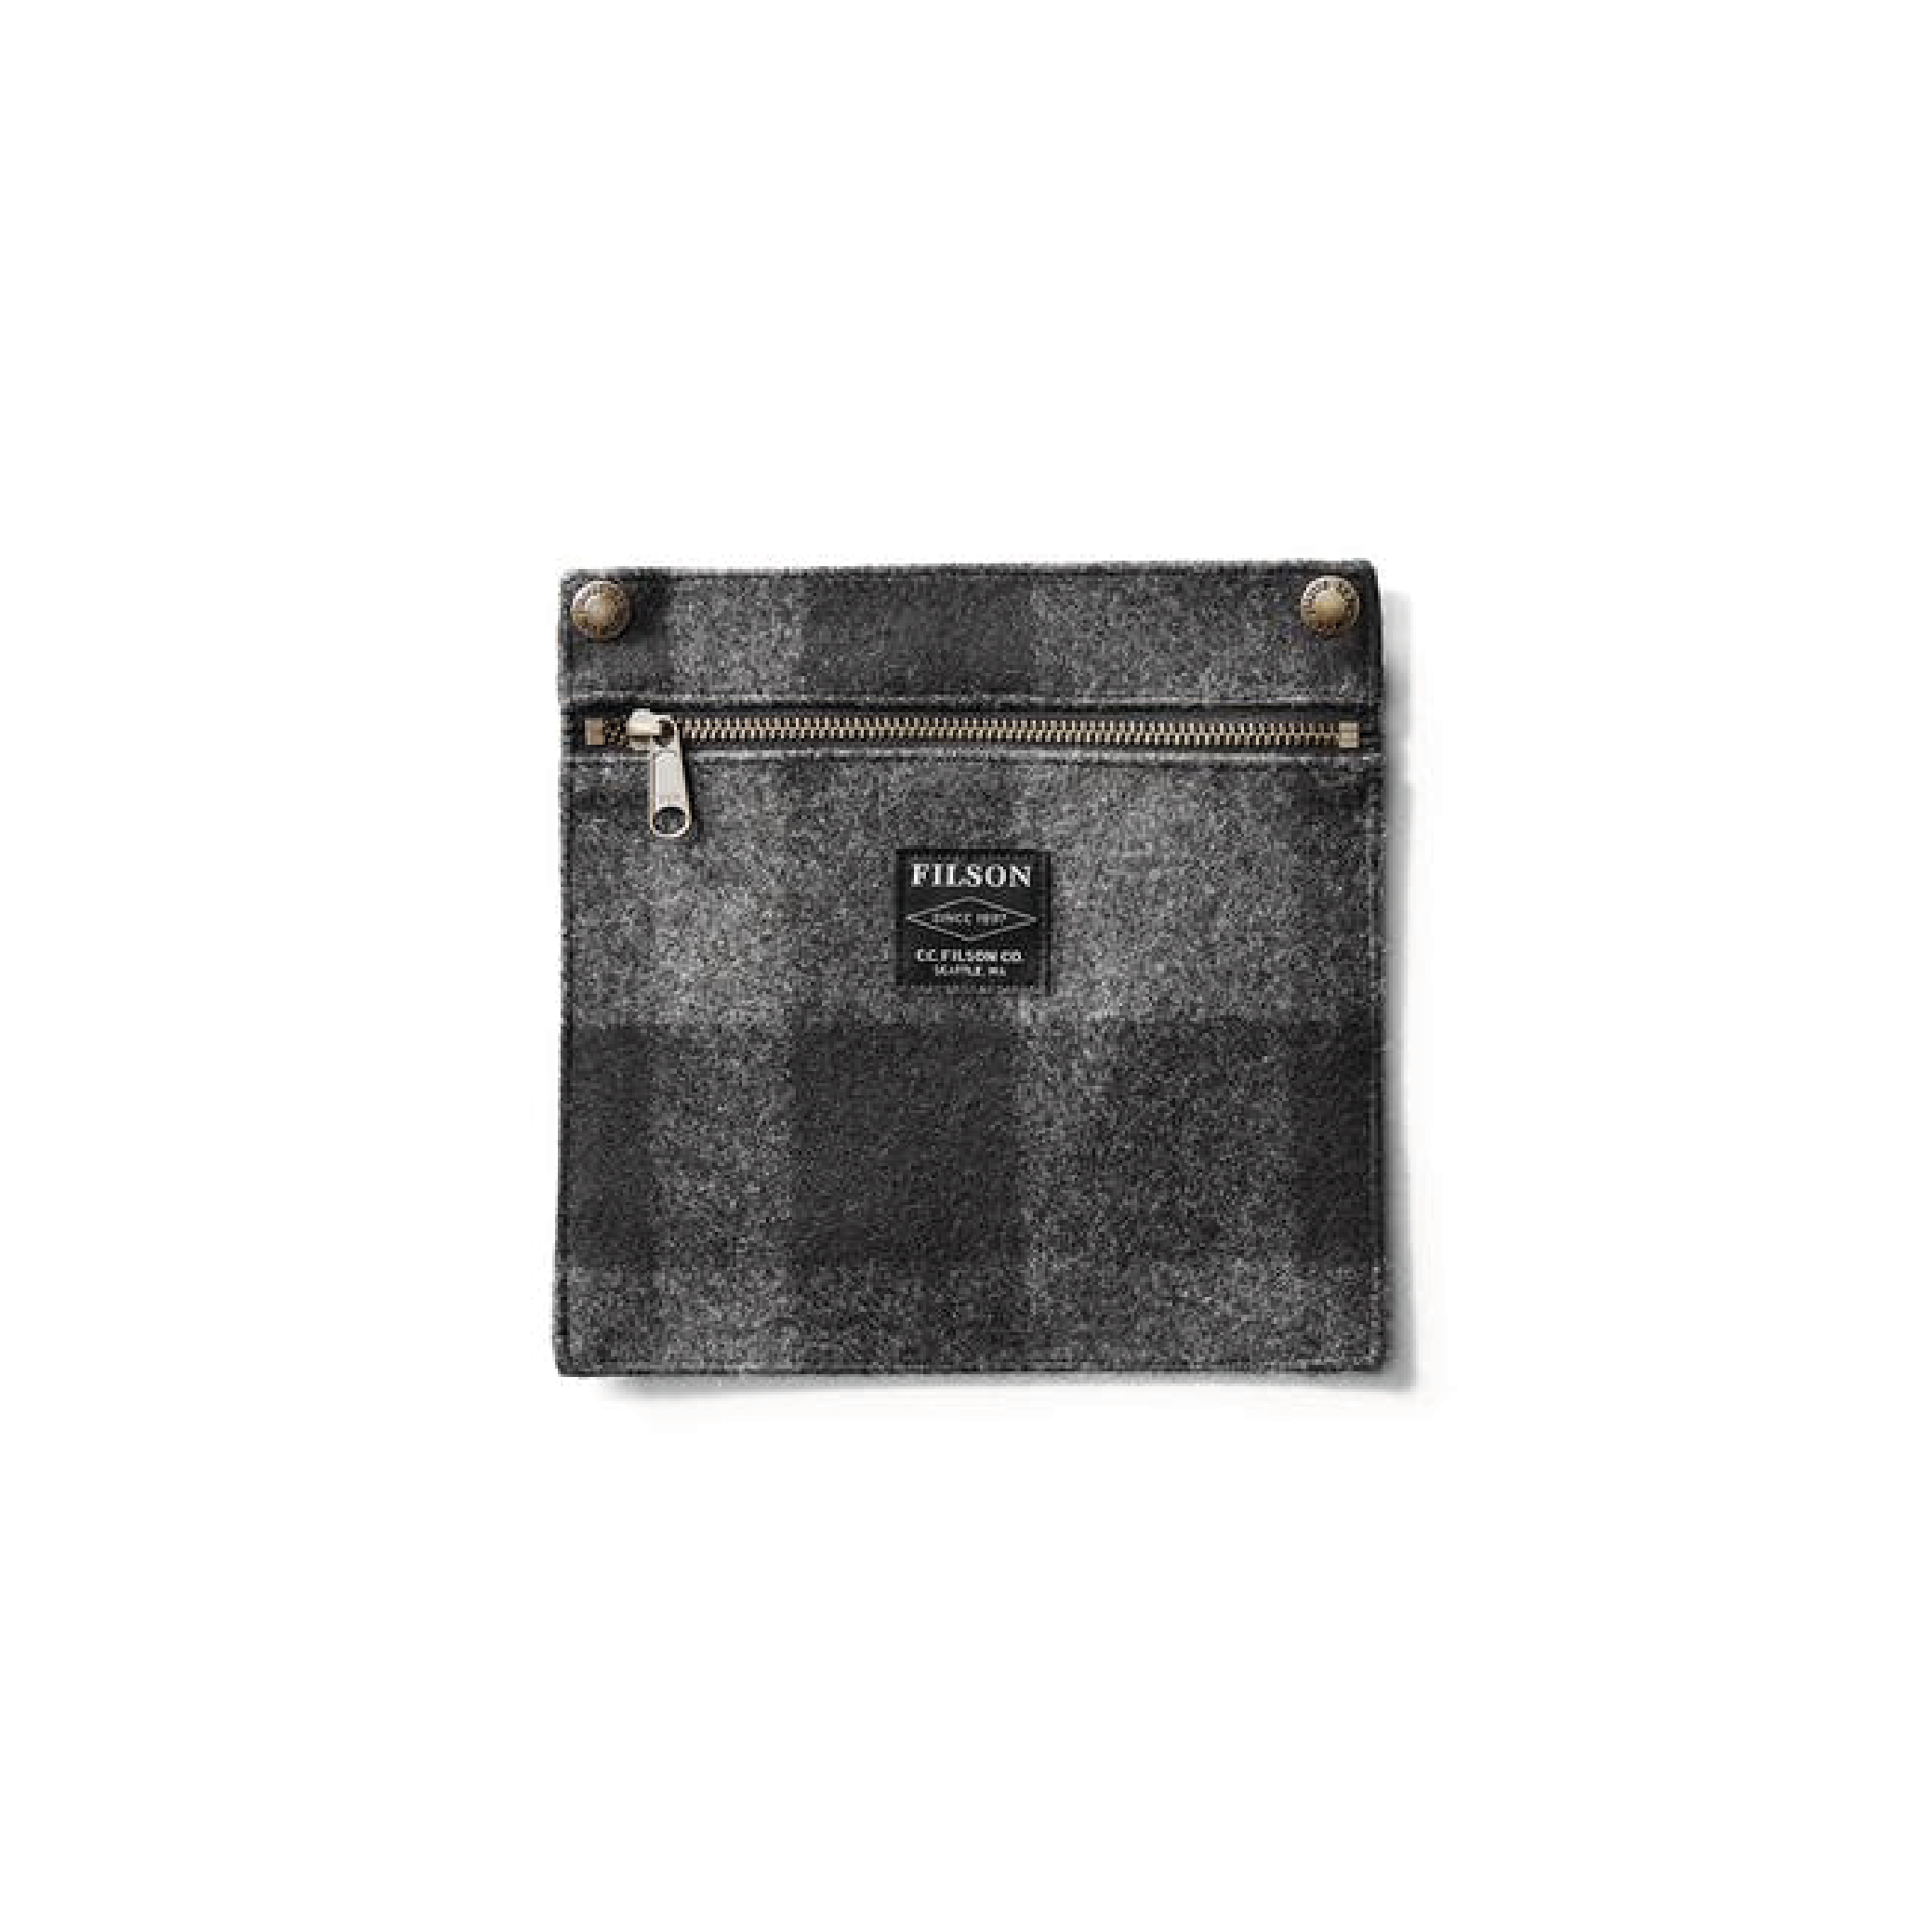 Filson Daypack Inside Pouch-01.png